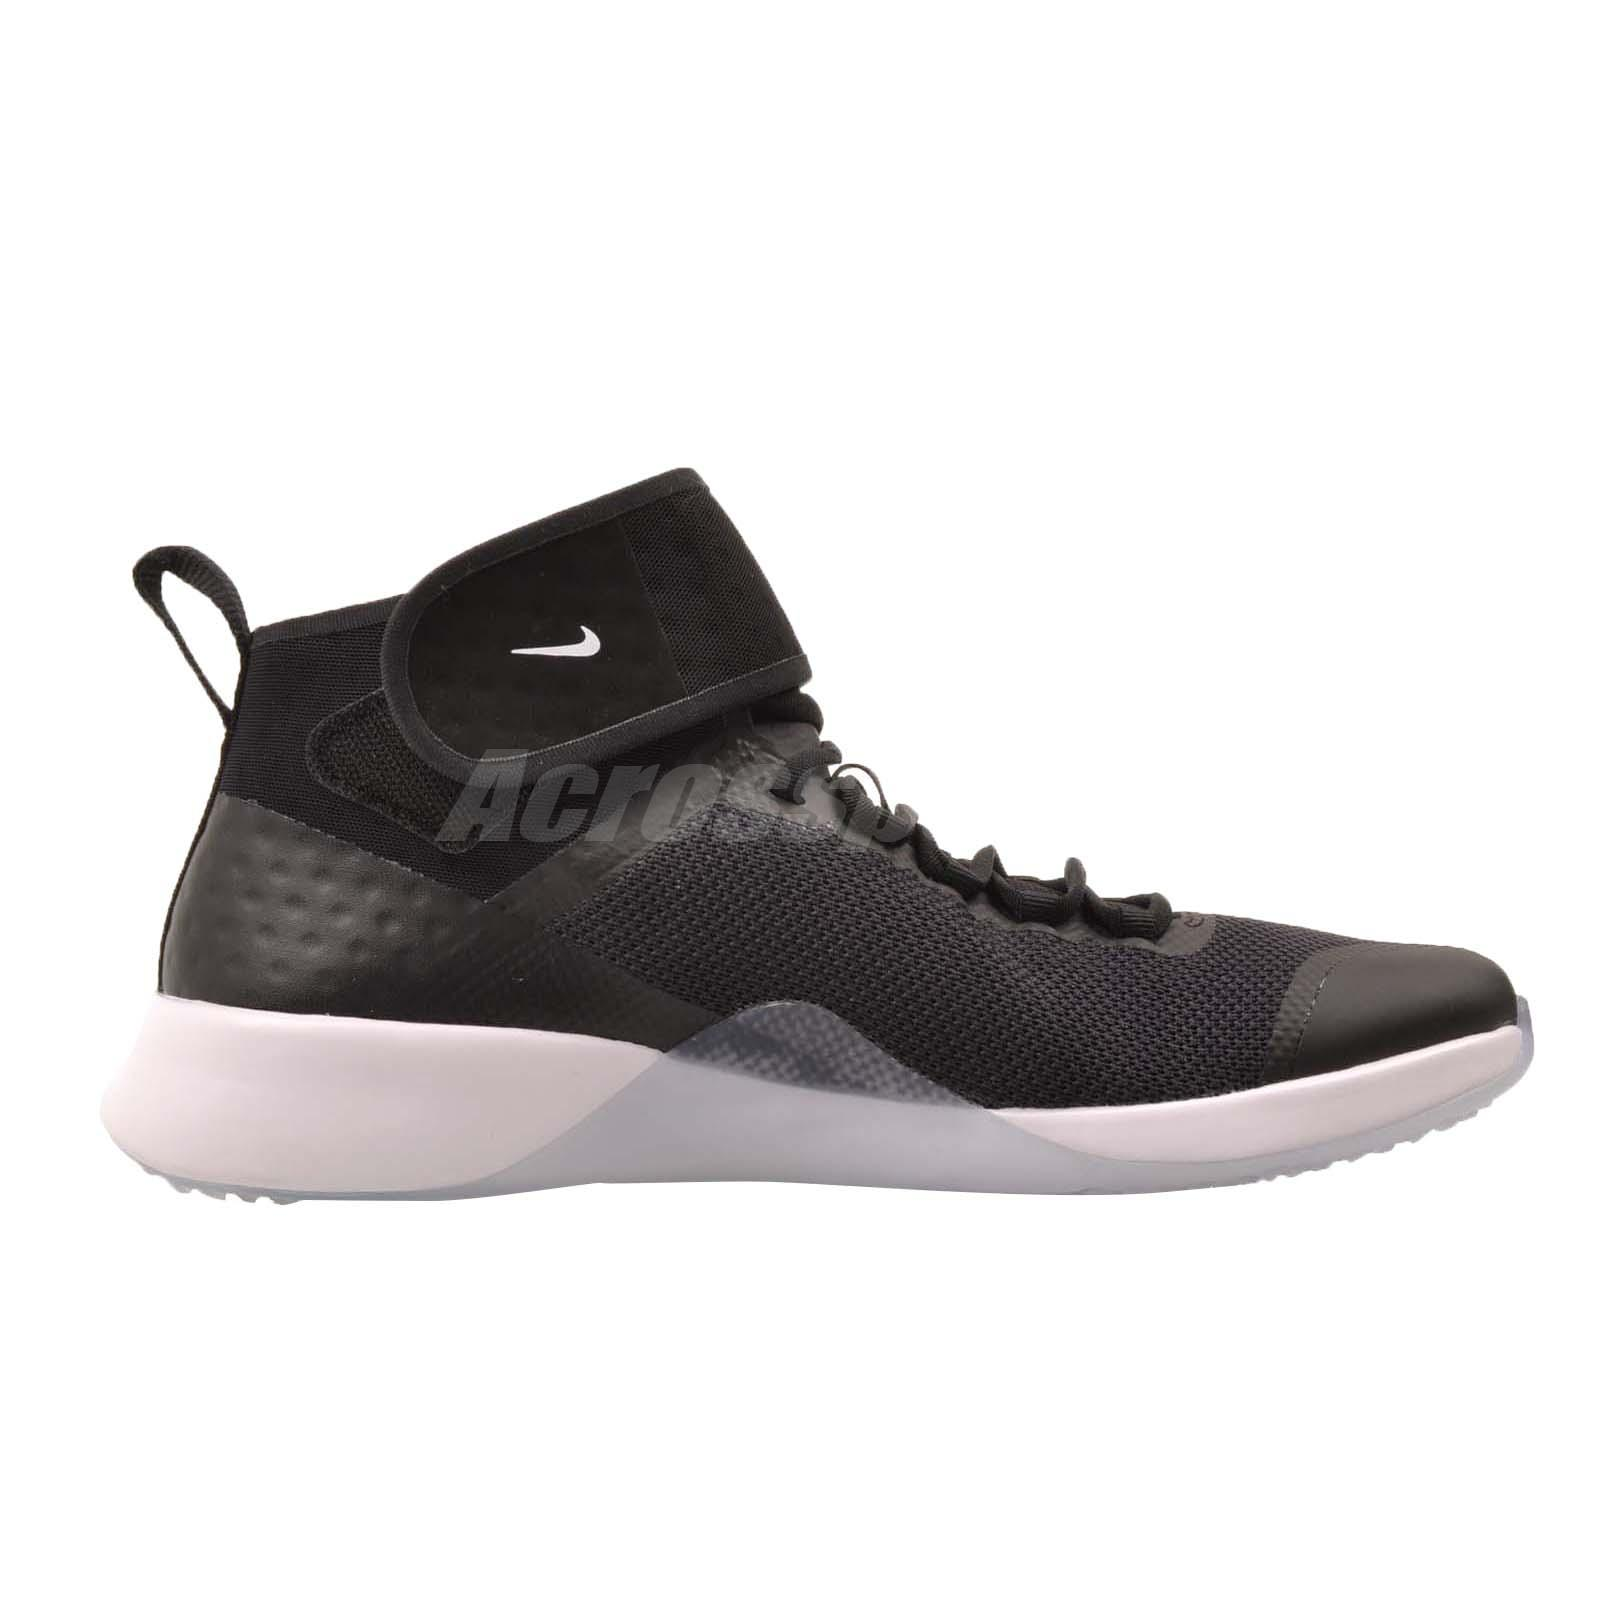 2019 Mujer Nike Wmns Nike Air Zoom Strong Negro